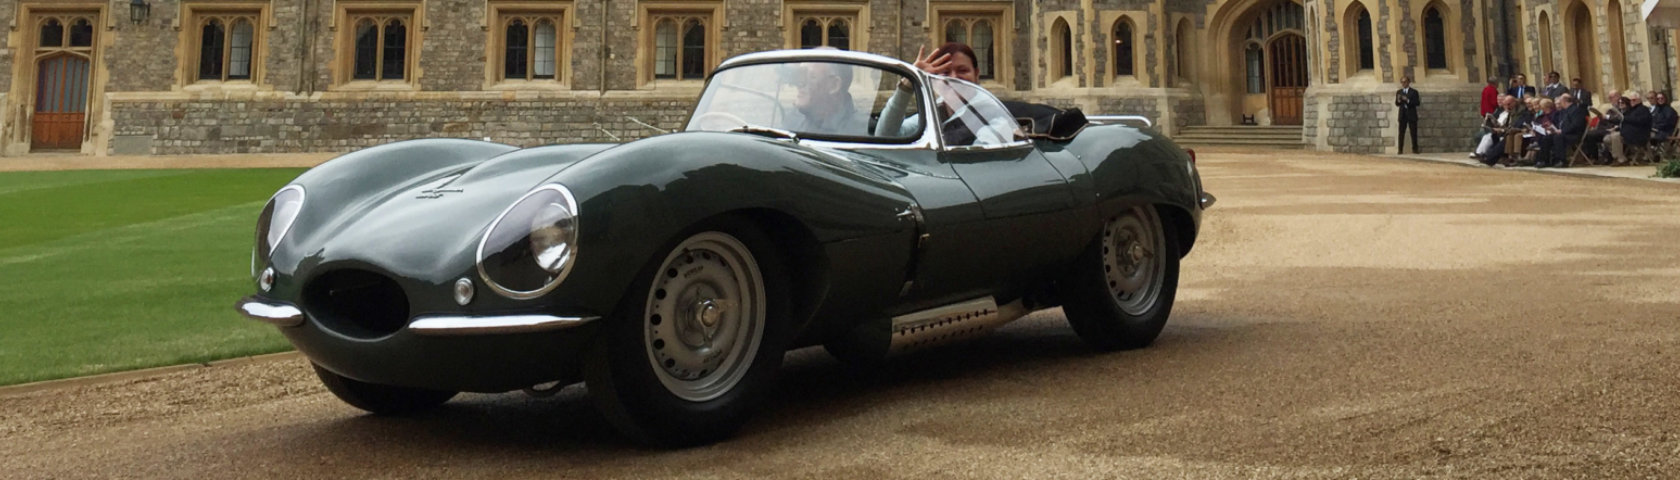 Jaguar Xkss Windsor